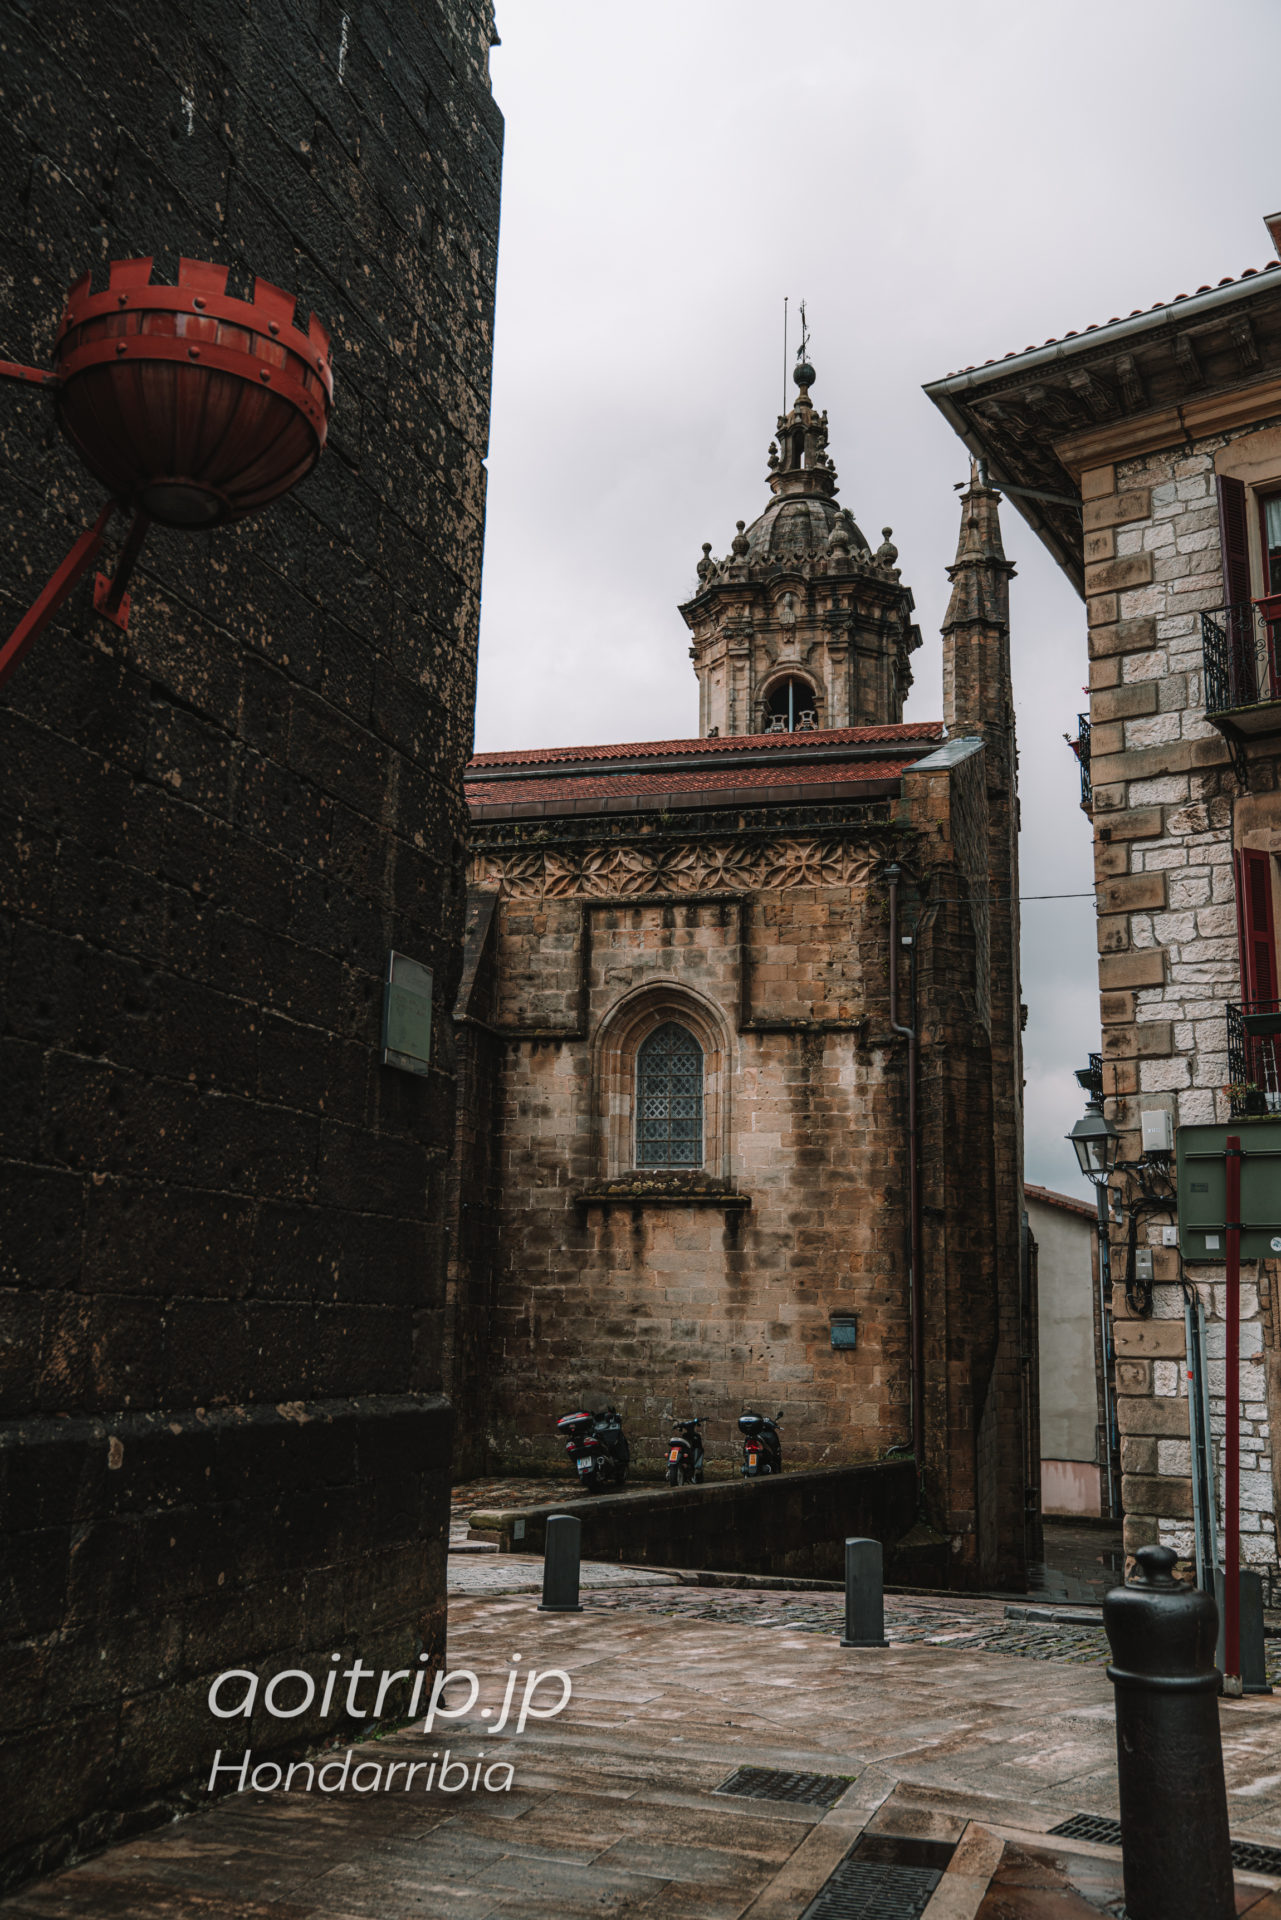 Postcards and Photos from Hondarrribia, Spain